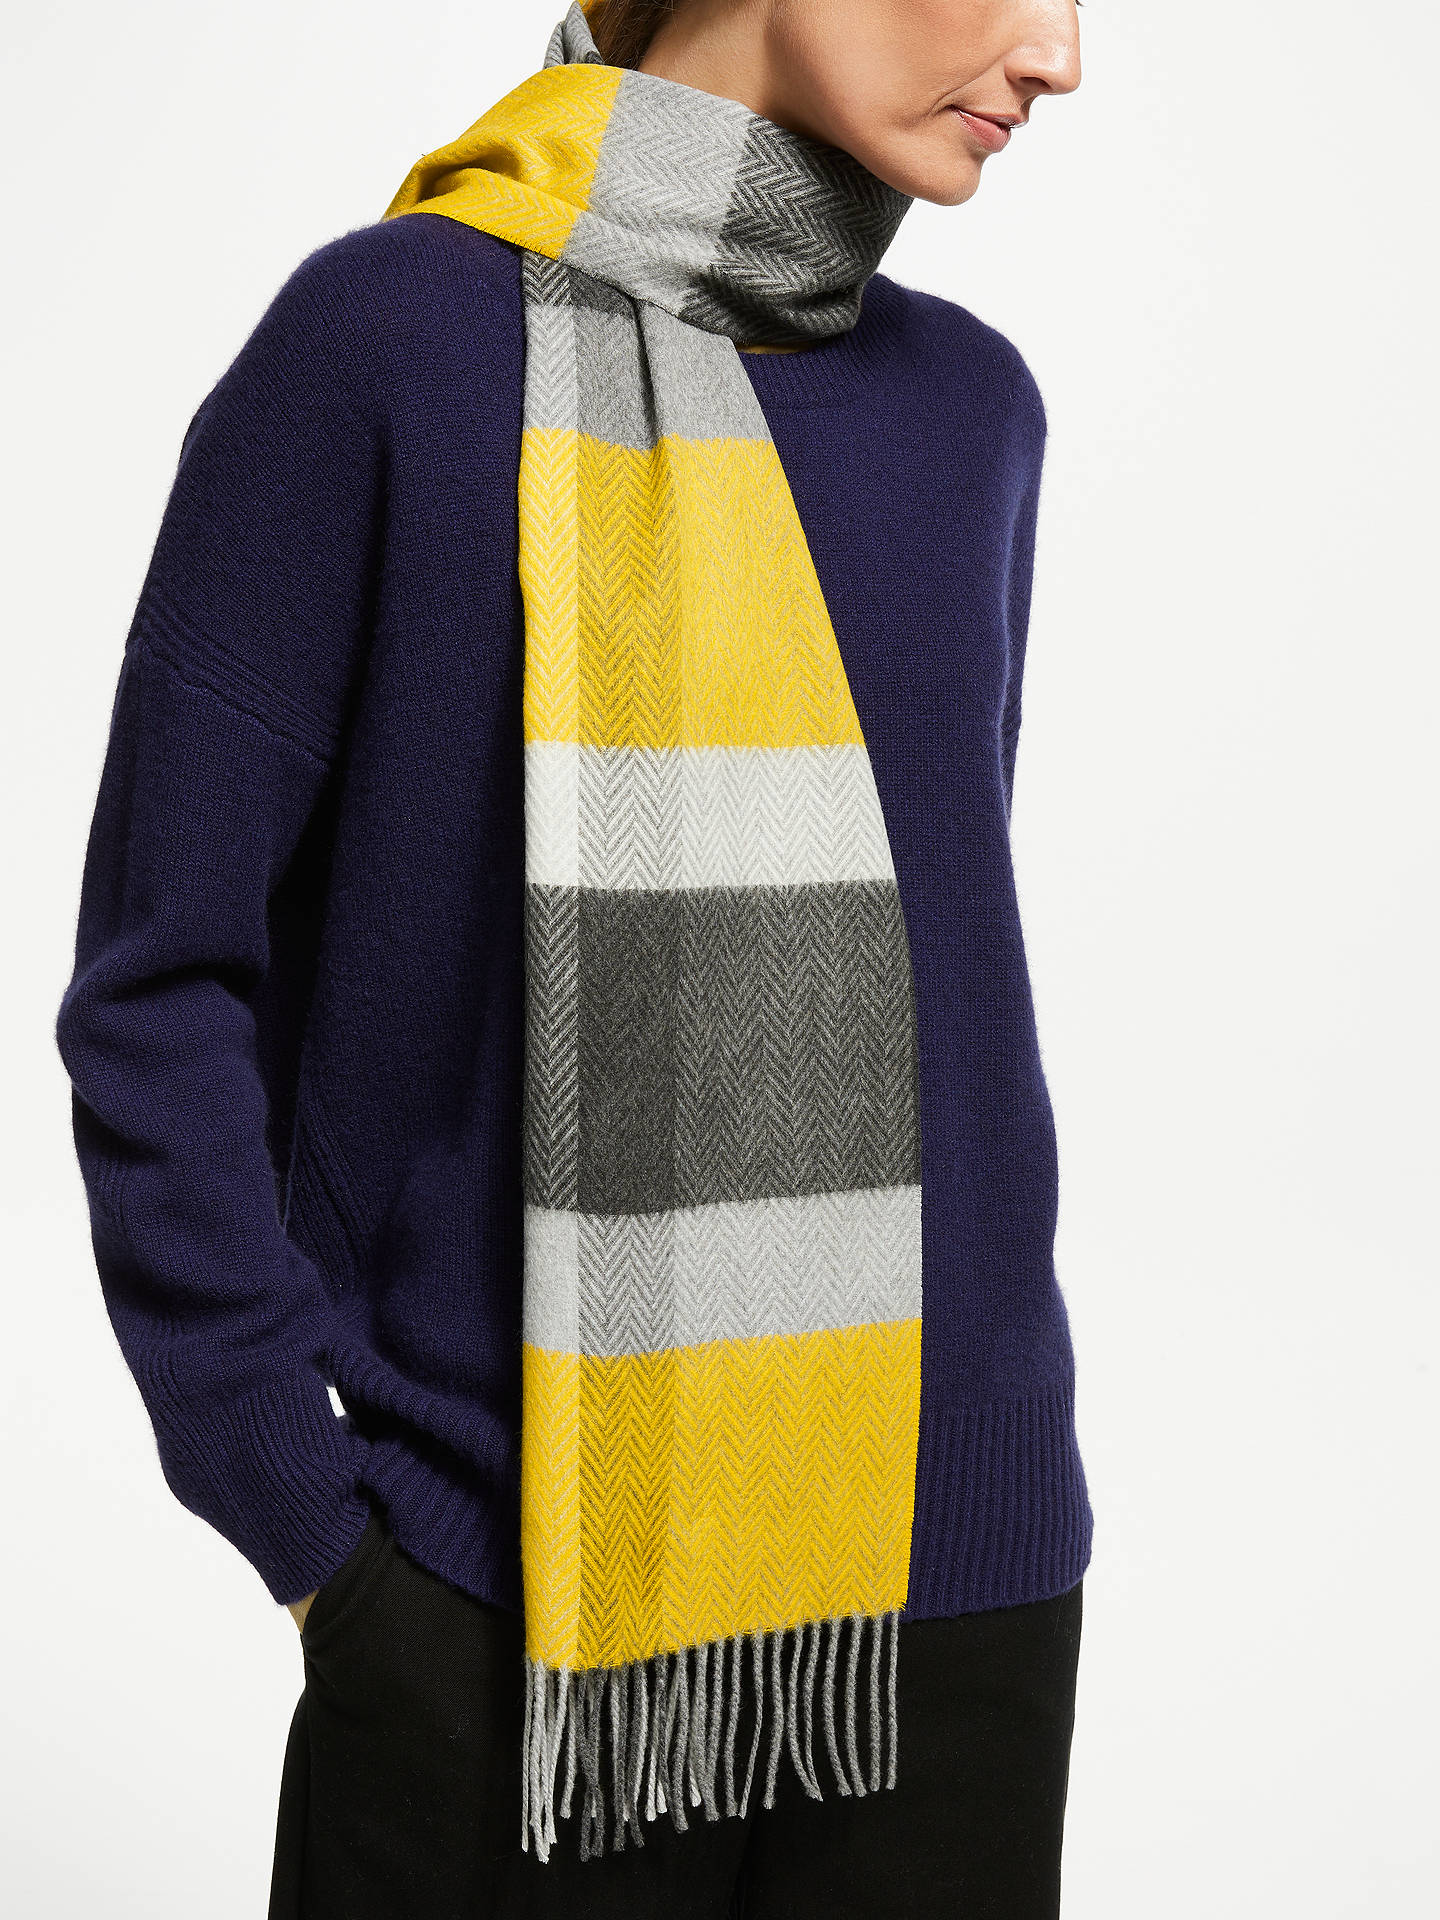 BuyJohn Lewis & Partners Cashmink Colour Block Scarf, Ochre Mix Online at johnlewis.com